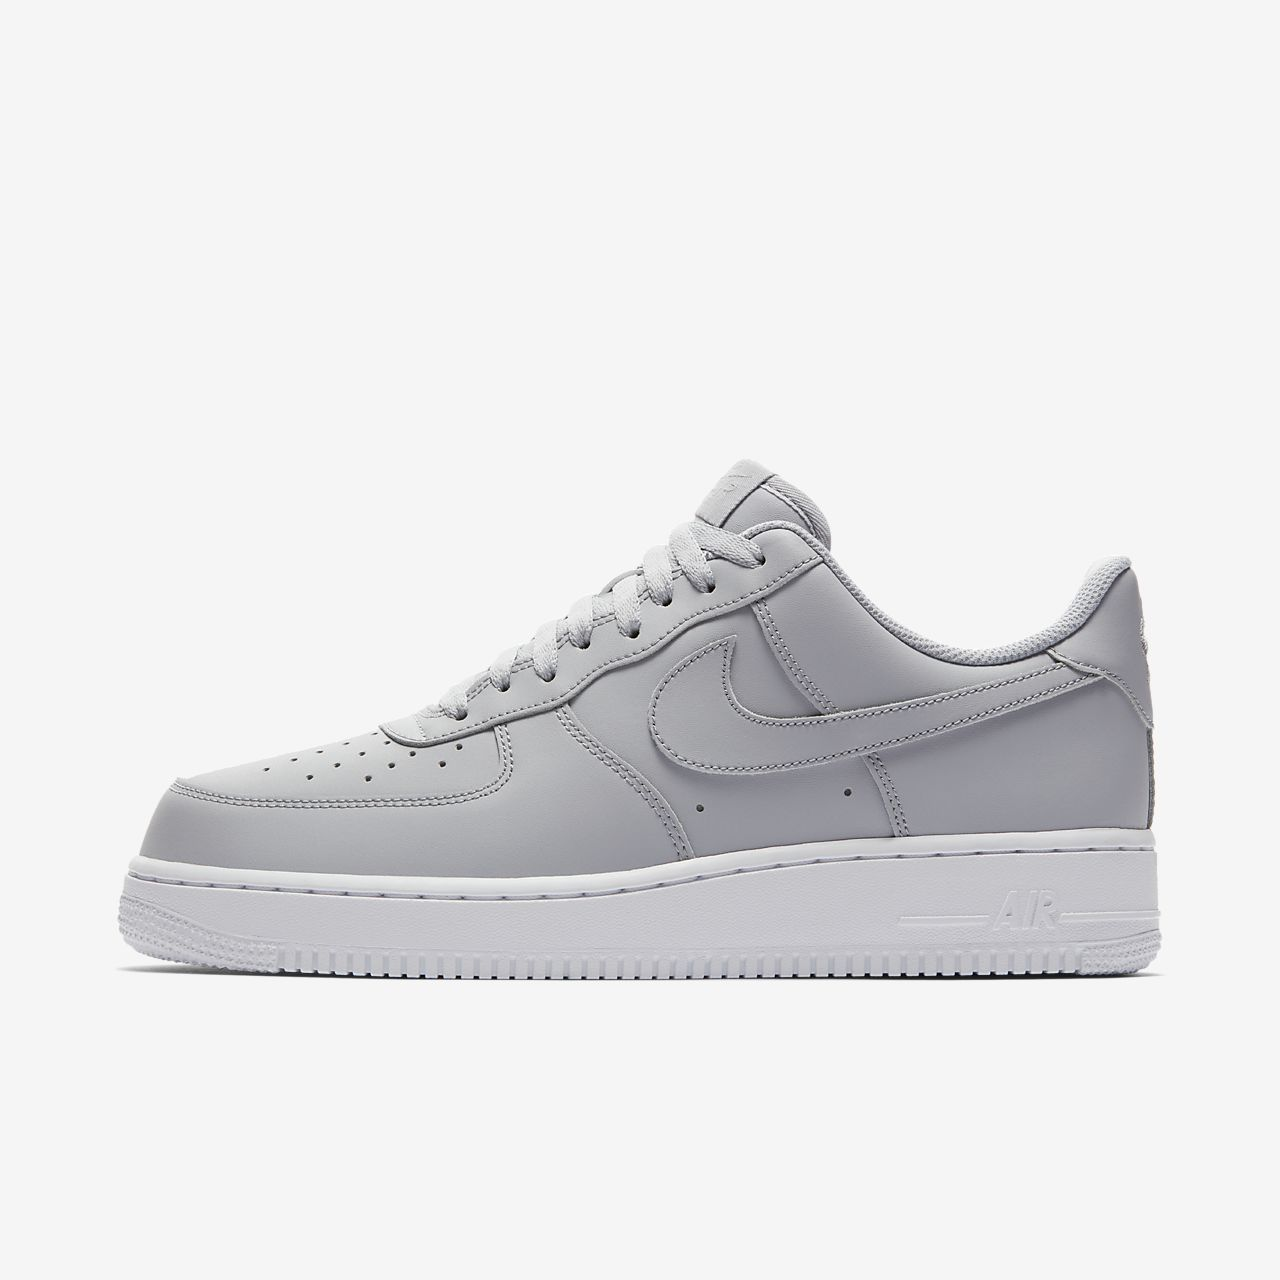 Nike Air Force 1 maat 23 | Dames & heren | Sneakerbaron NL